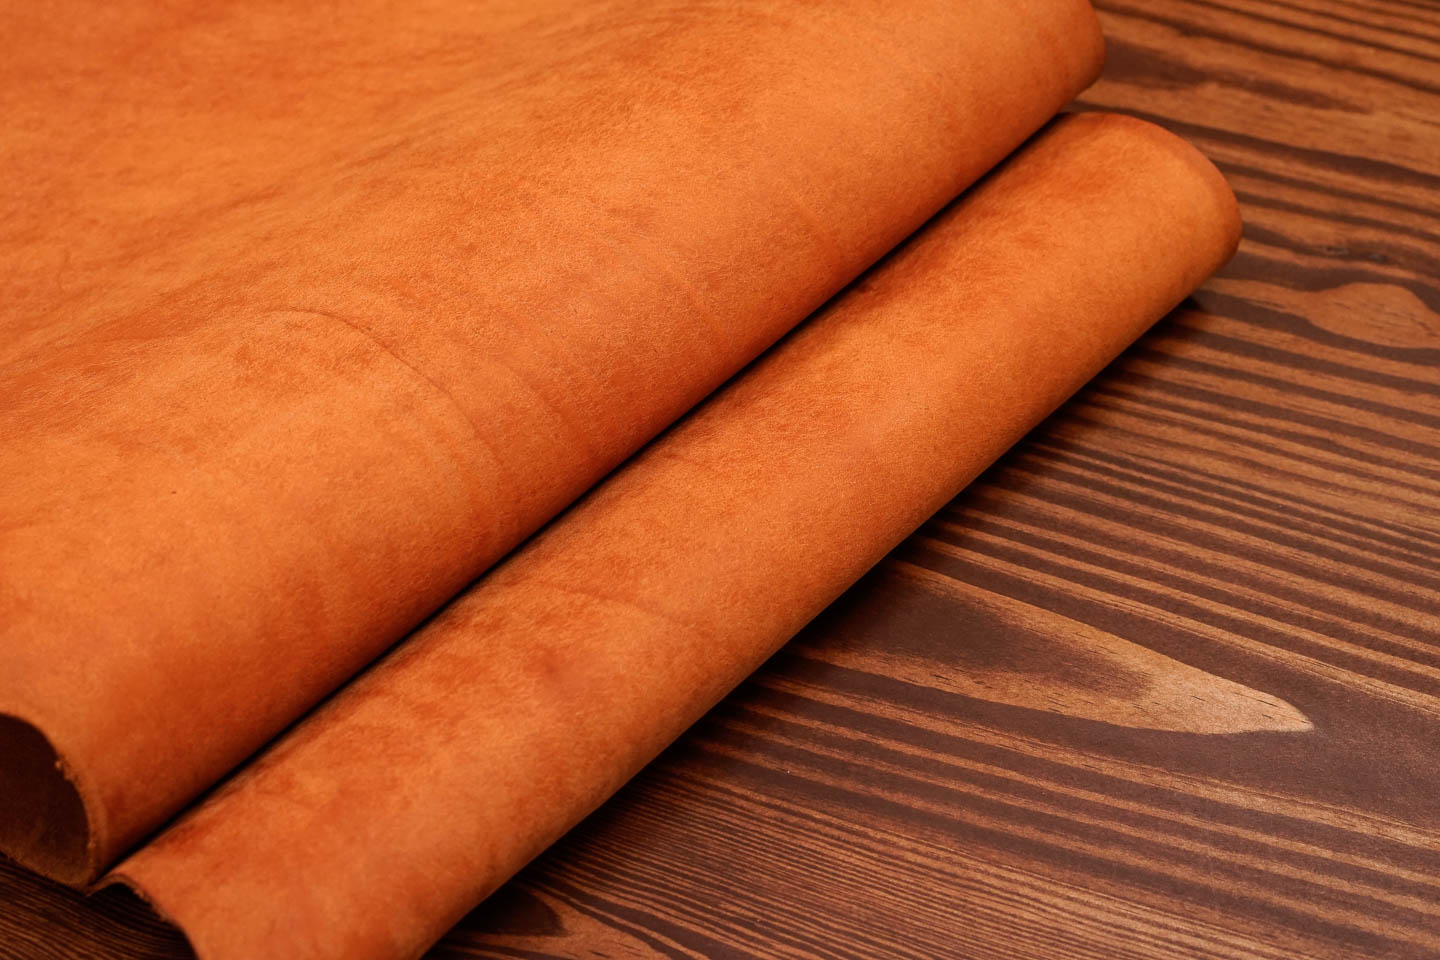 """Pueblo - This Italian """"pueblo"""" is a very particular vegetable tanned leather from an artisanal tannery in Tuscany. Pueblo leather is known for its signature stone polished finish and rich aroma as well as its ability to age gracefully and dramatically."""